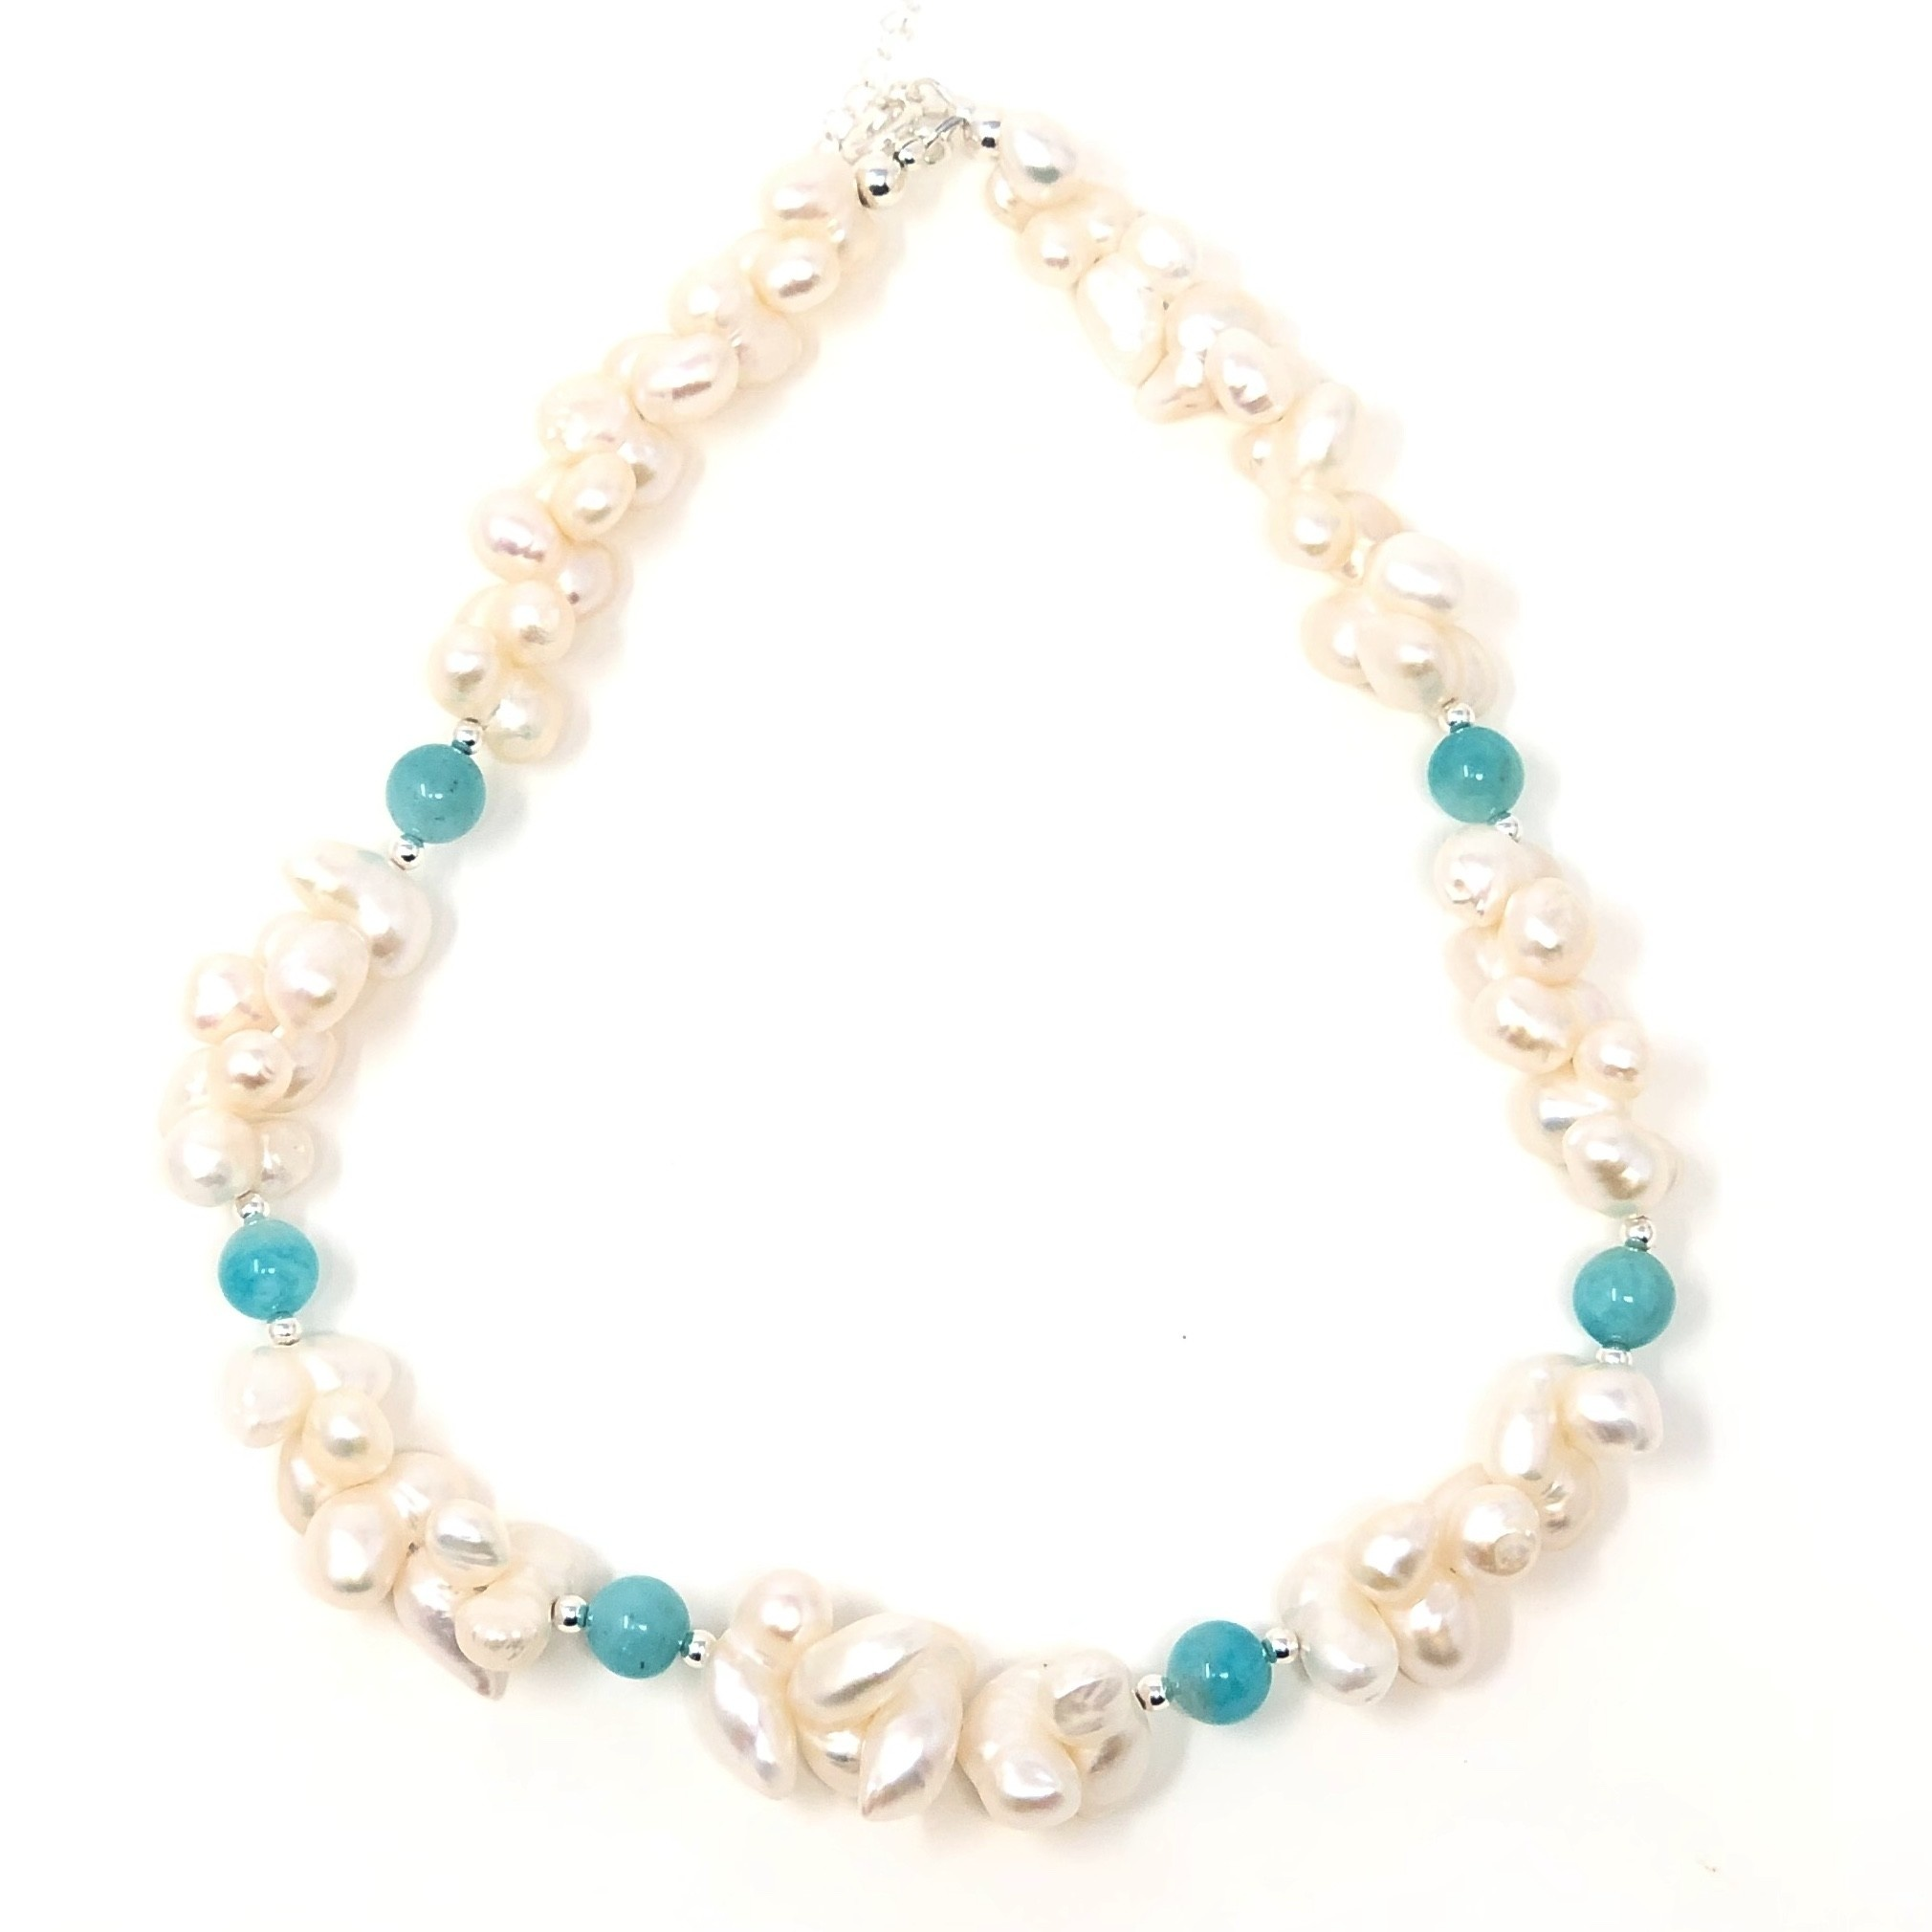 Peruvian Amazonite & Keshi Pearl Necklace